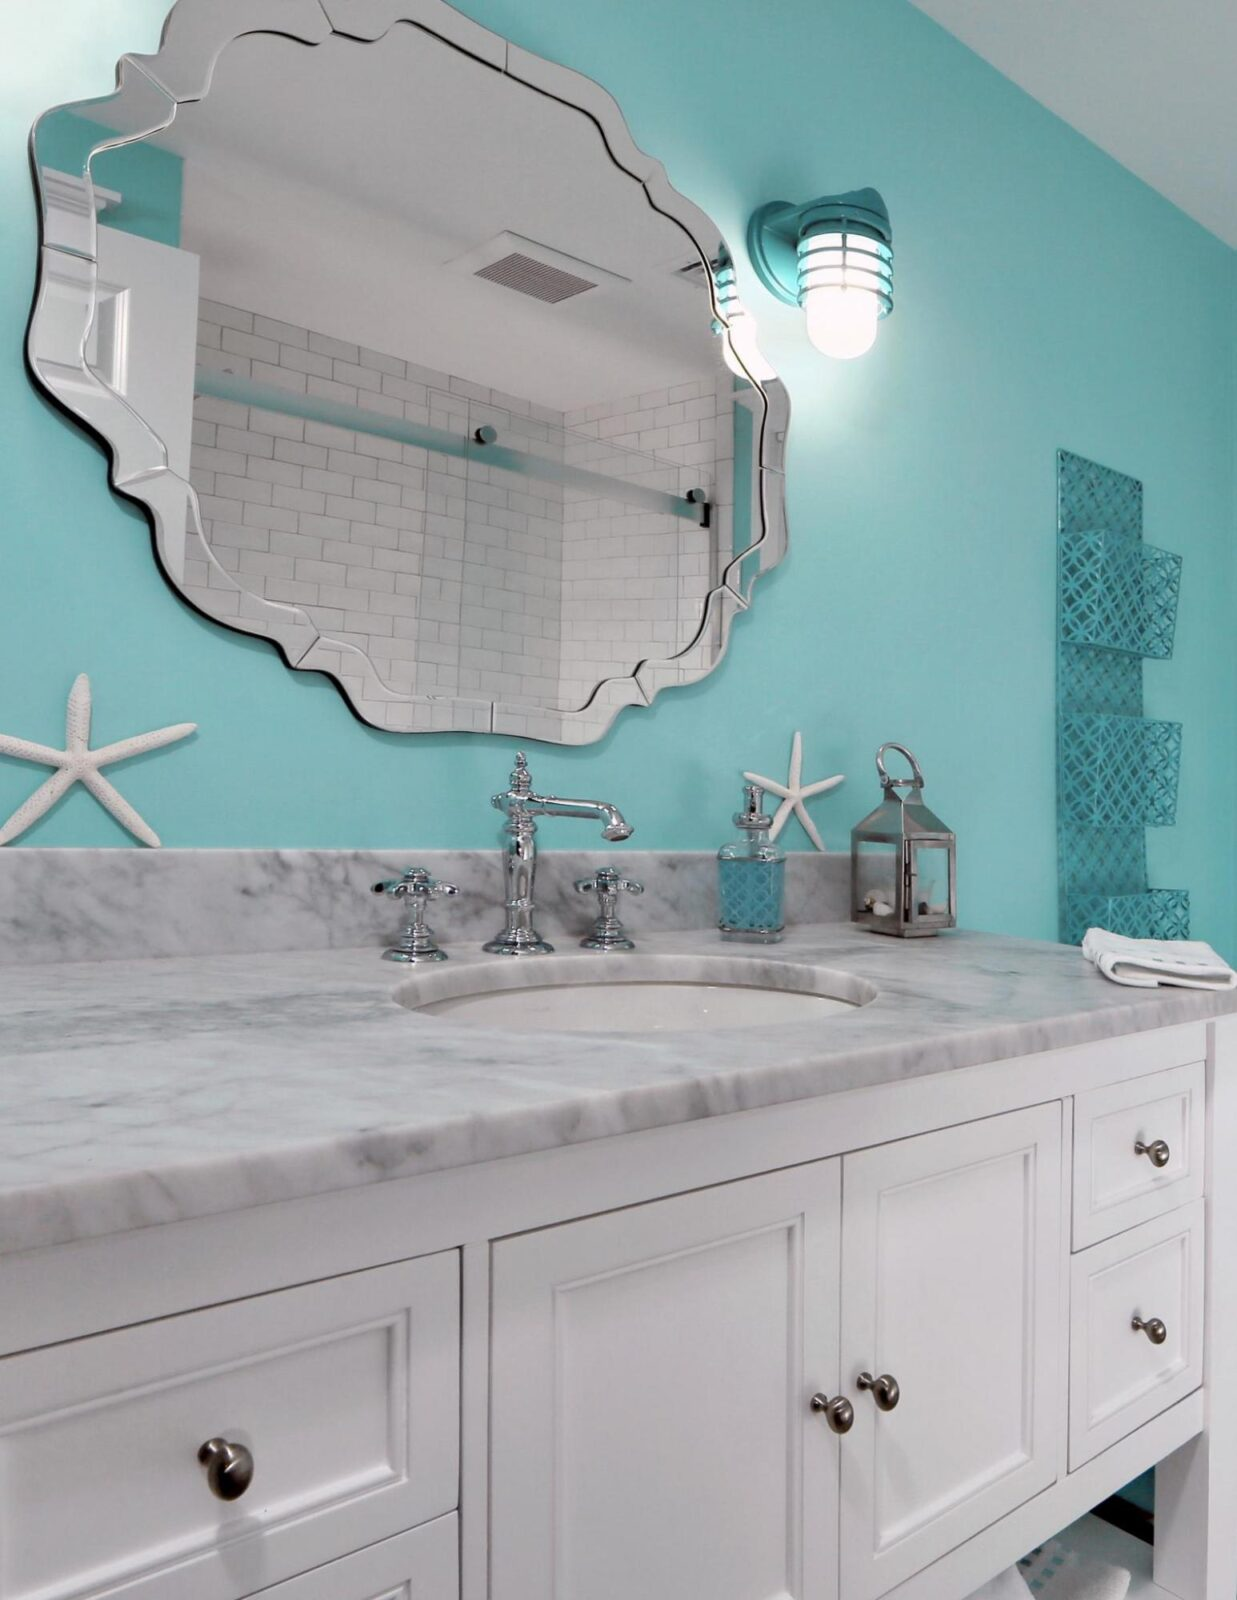 Torquiose Bathroom and Sink